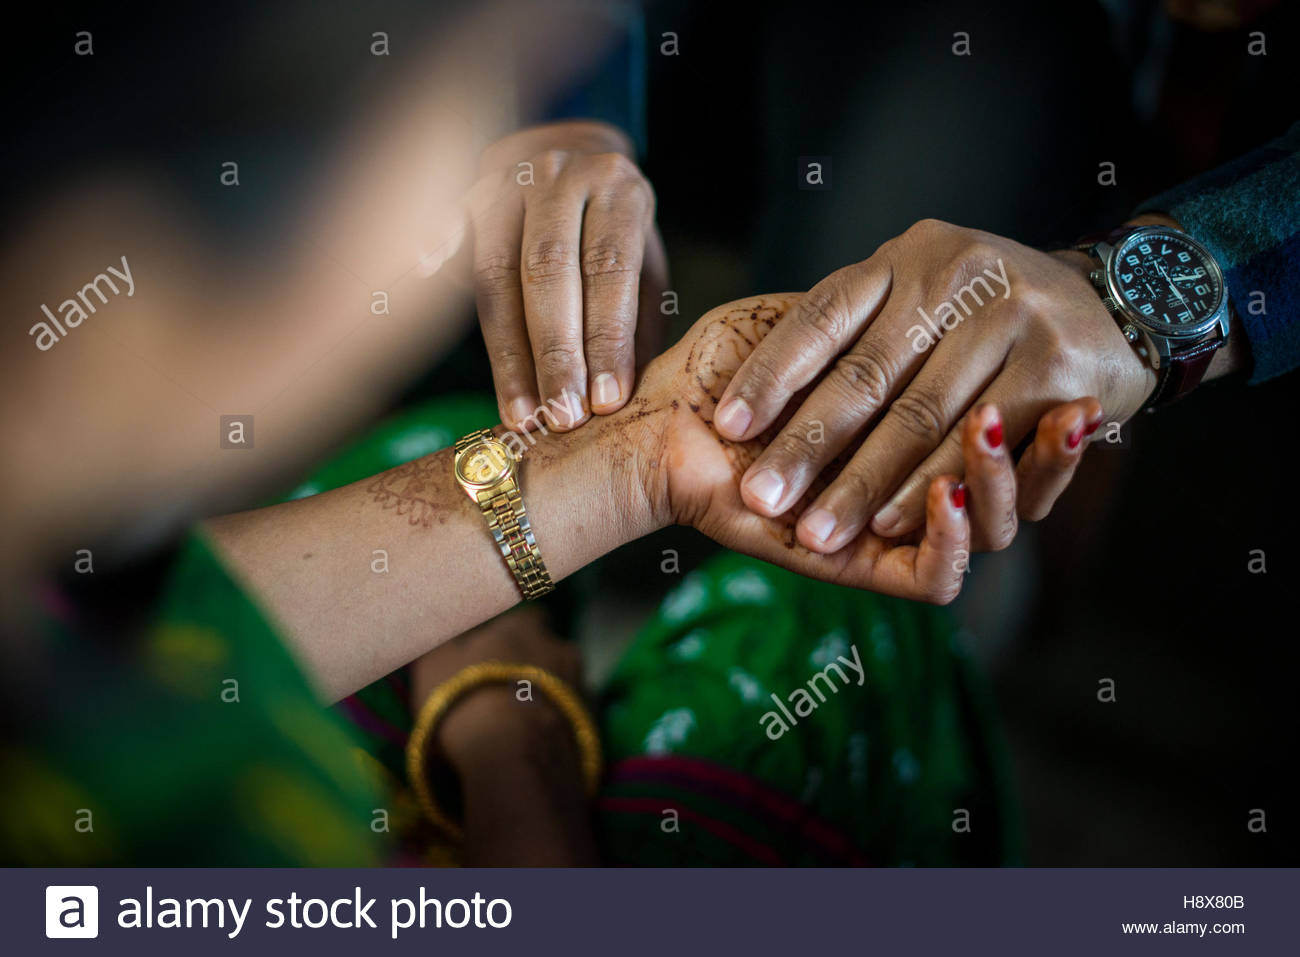 A doctor checks a woman's pulse with his fingers and times it on his watch in a small hospital in Nepal. - Stock Image